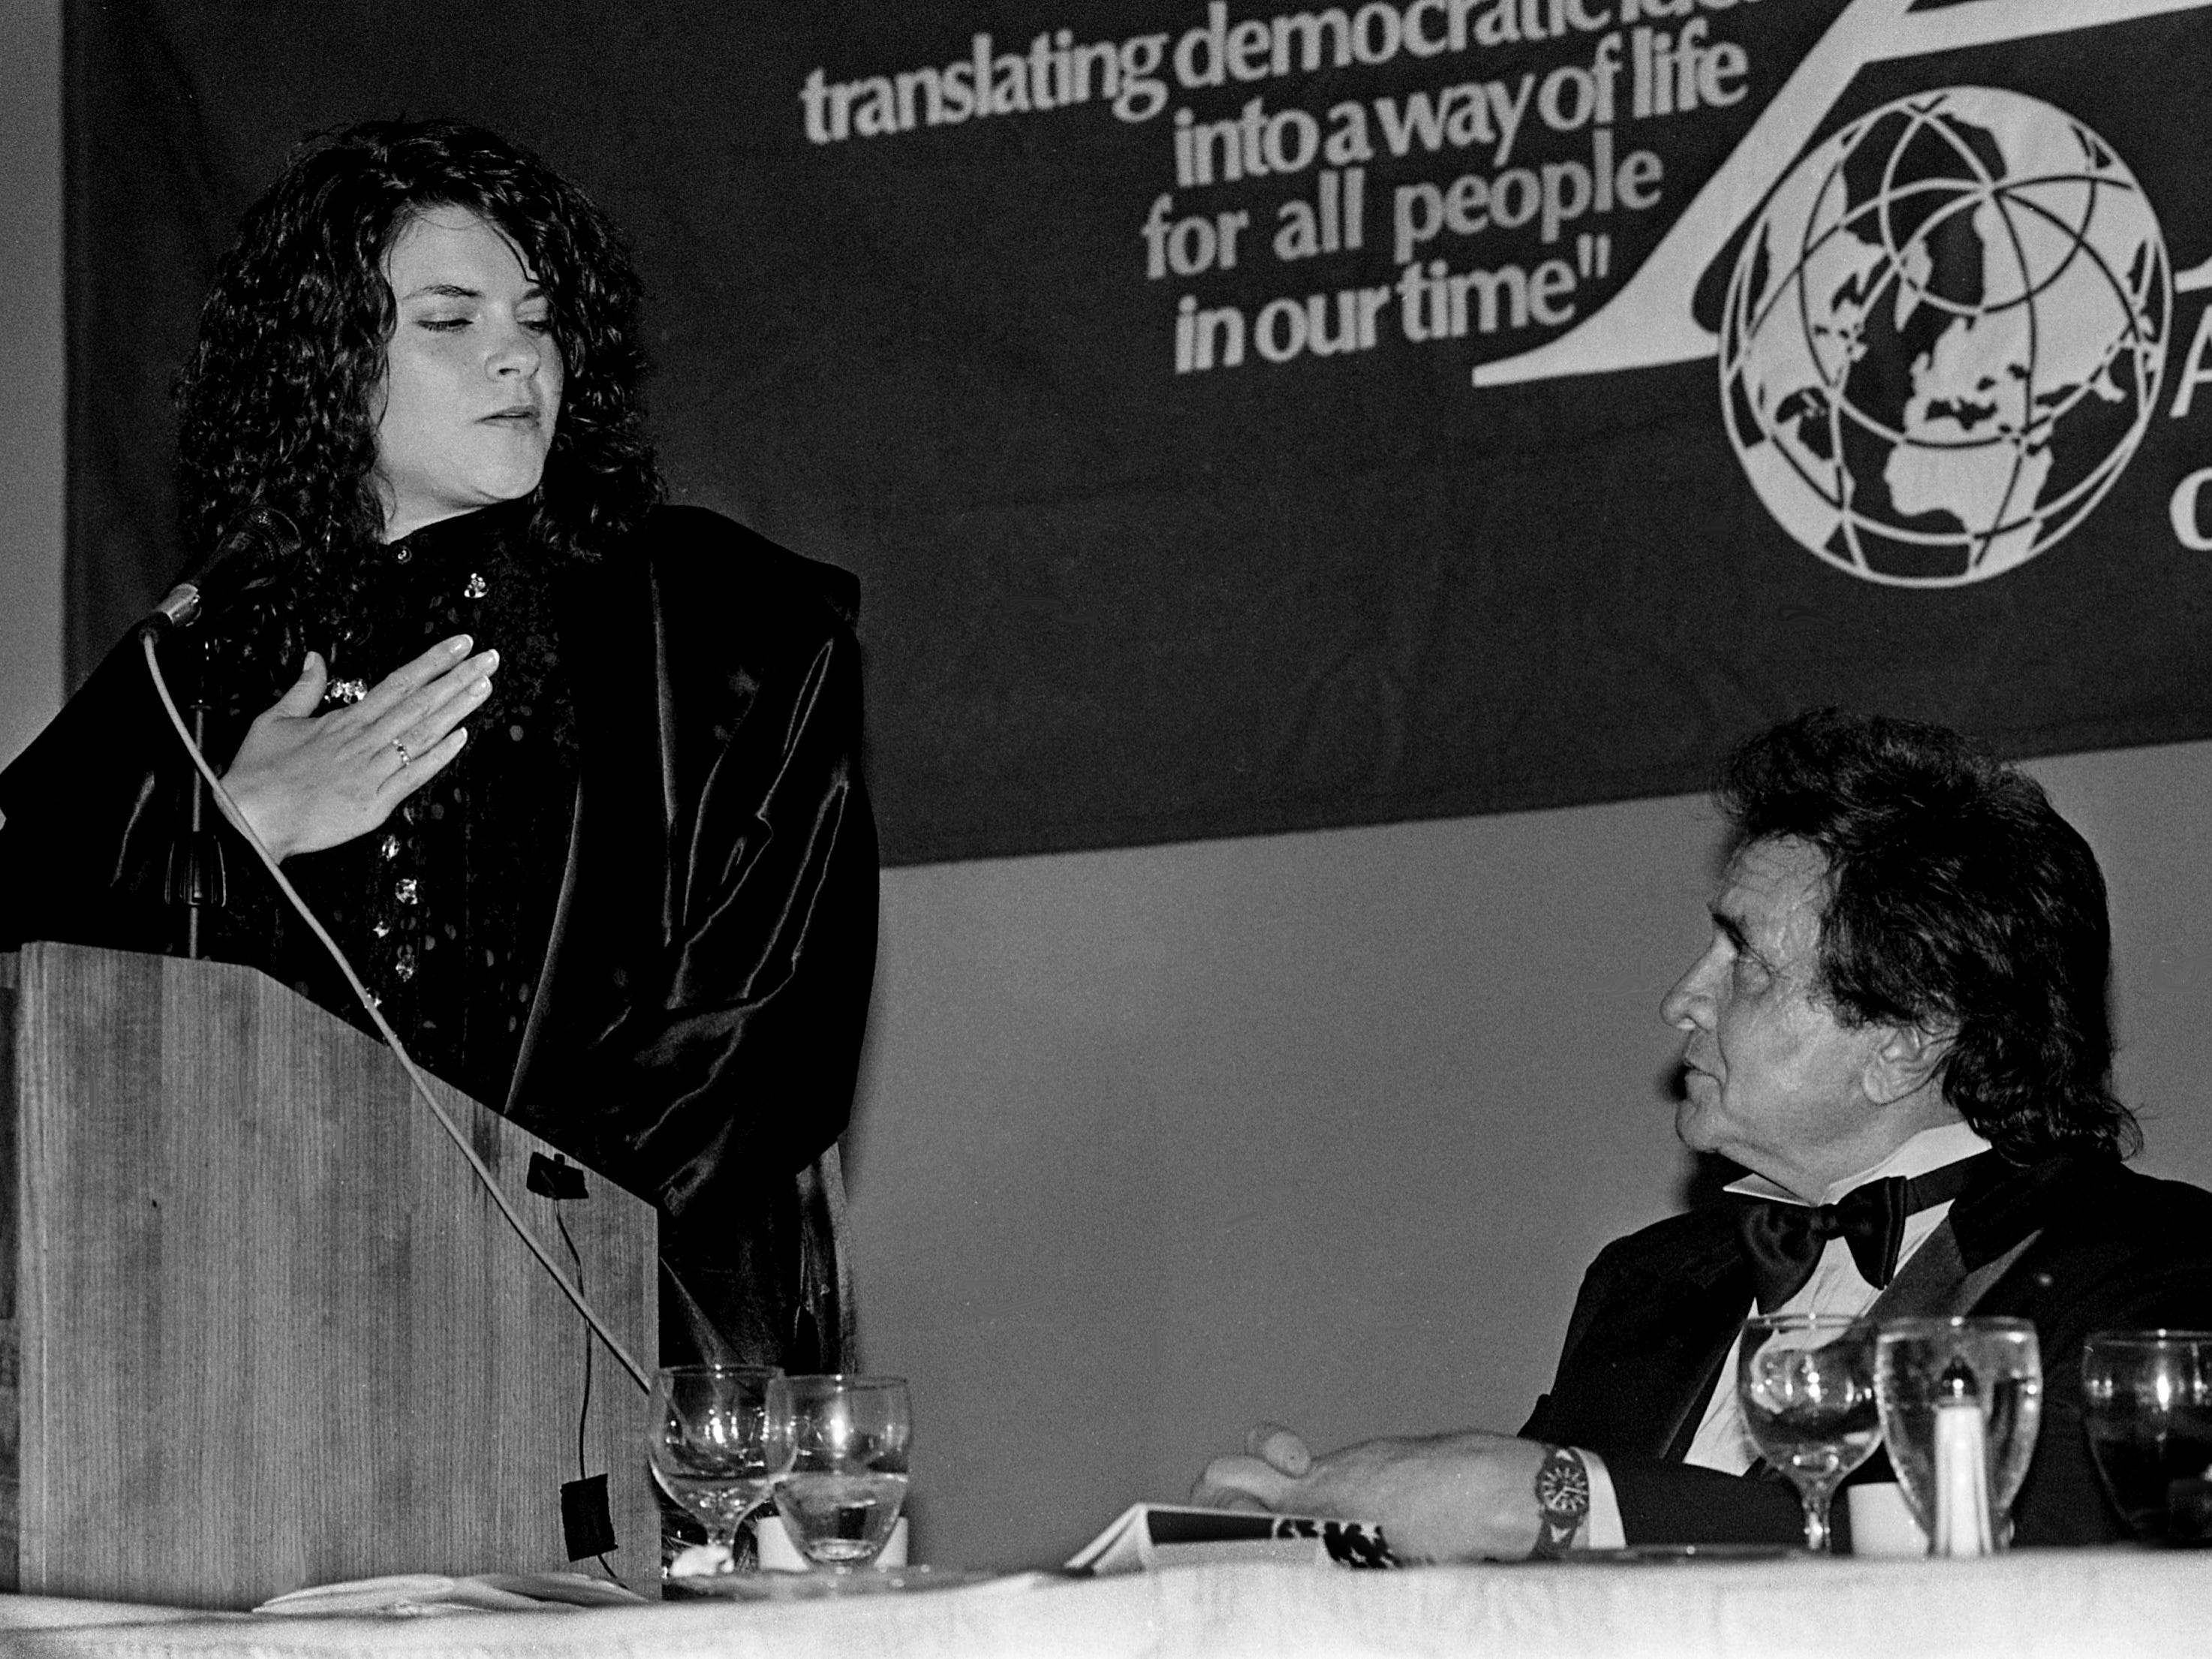 Rosanne Cash, left, speaks to her father, Johnny Cash, who is receiving a B'nai B'rith's Anti-Defamation League honor that will be renamed the Johnny Cash Americanism Award, during ceremonies at the Doubletree Hotel on March 30, 1989.